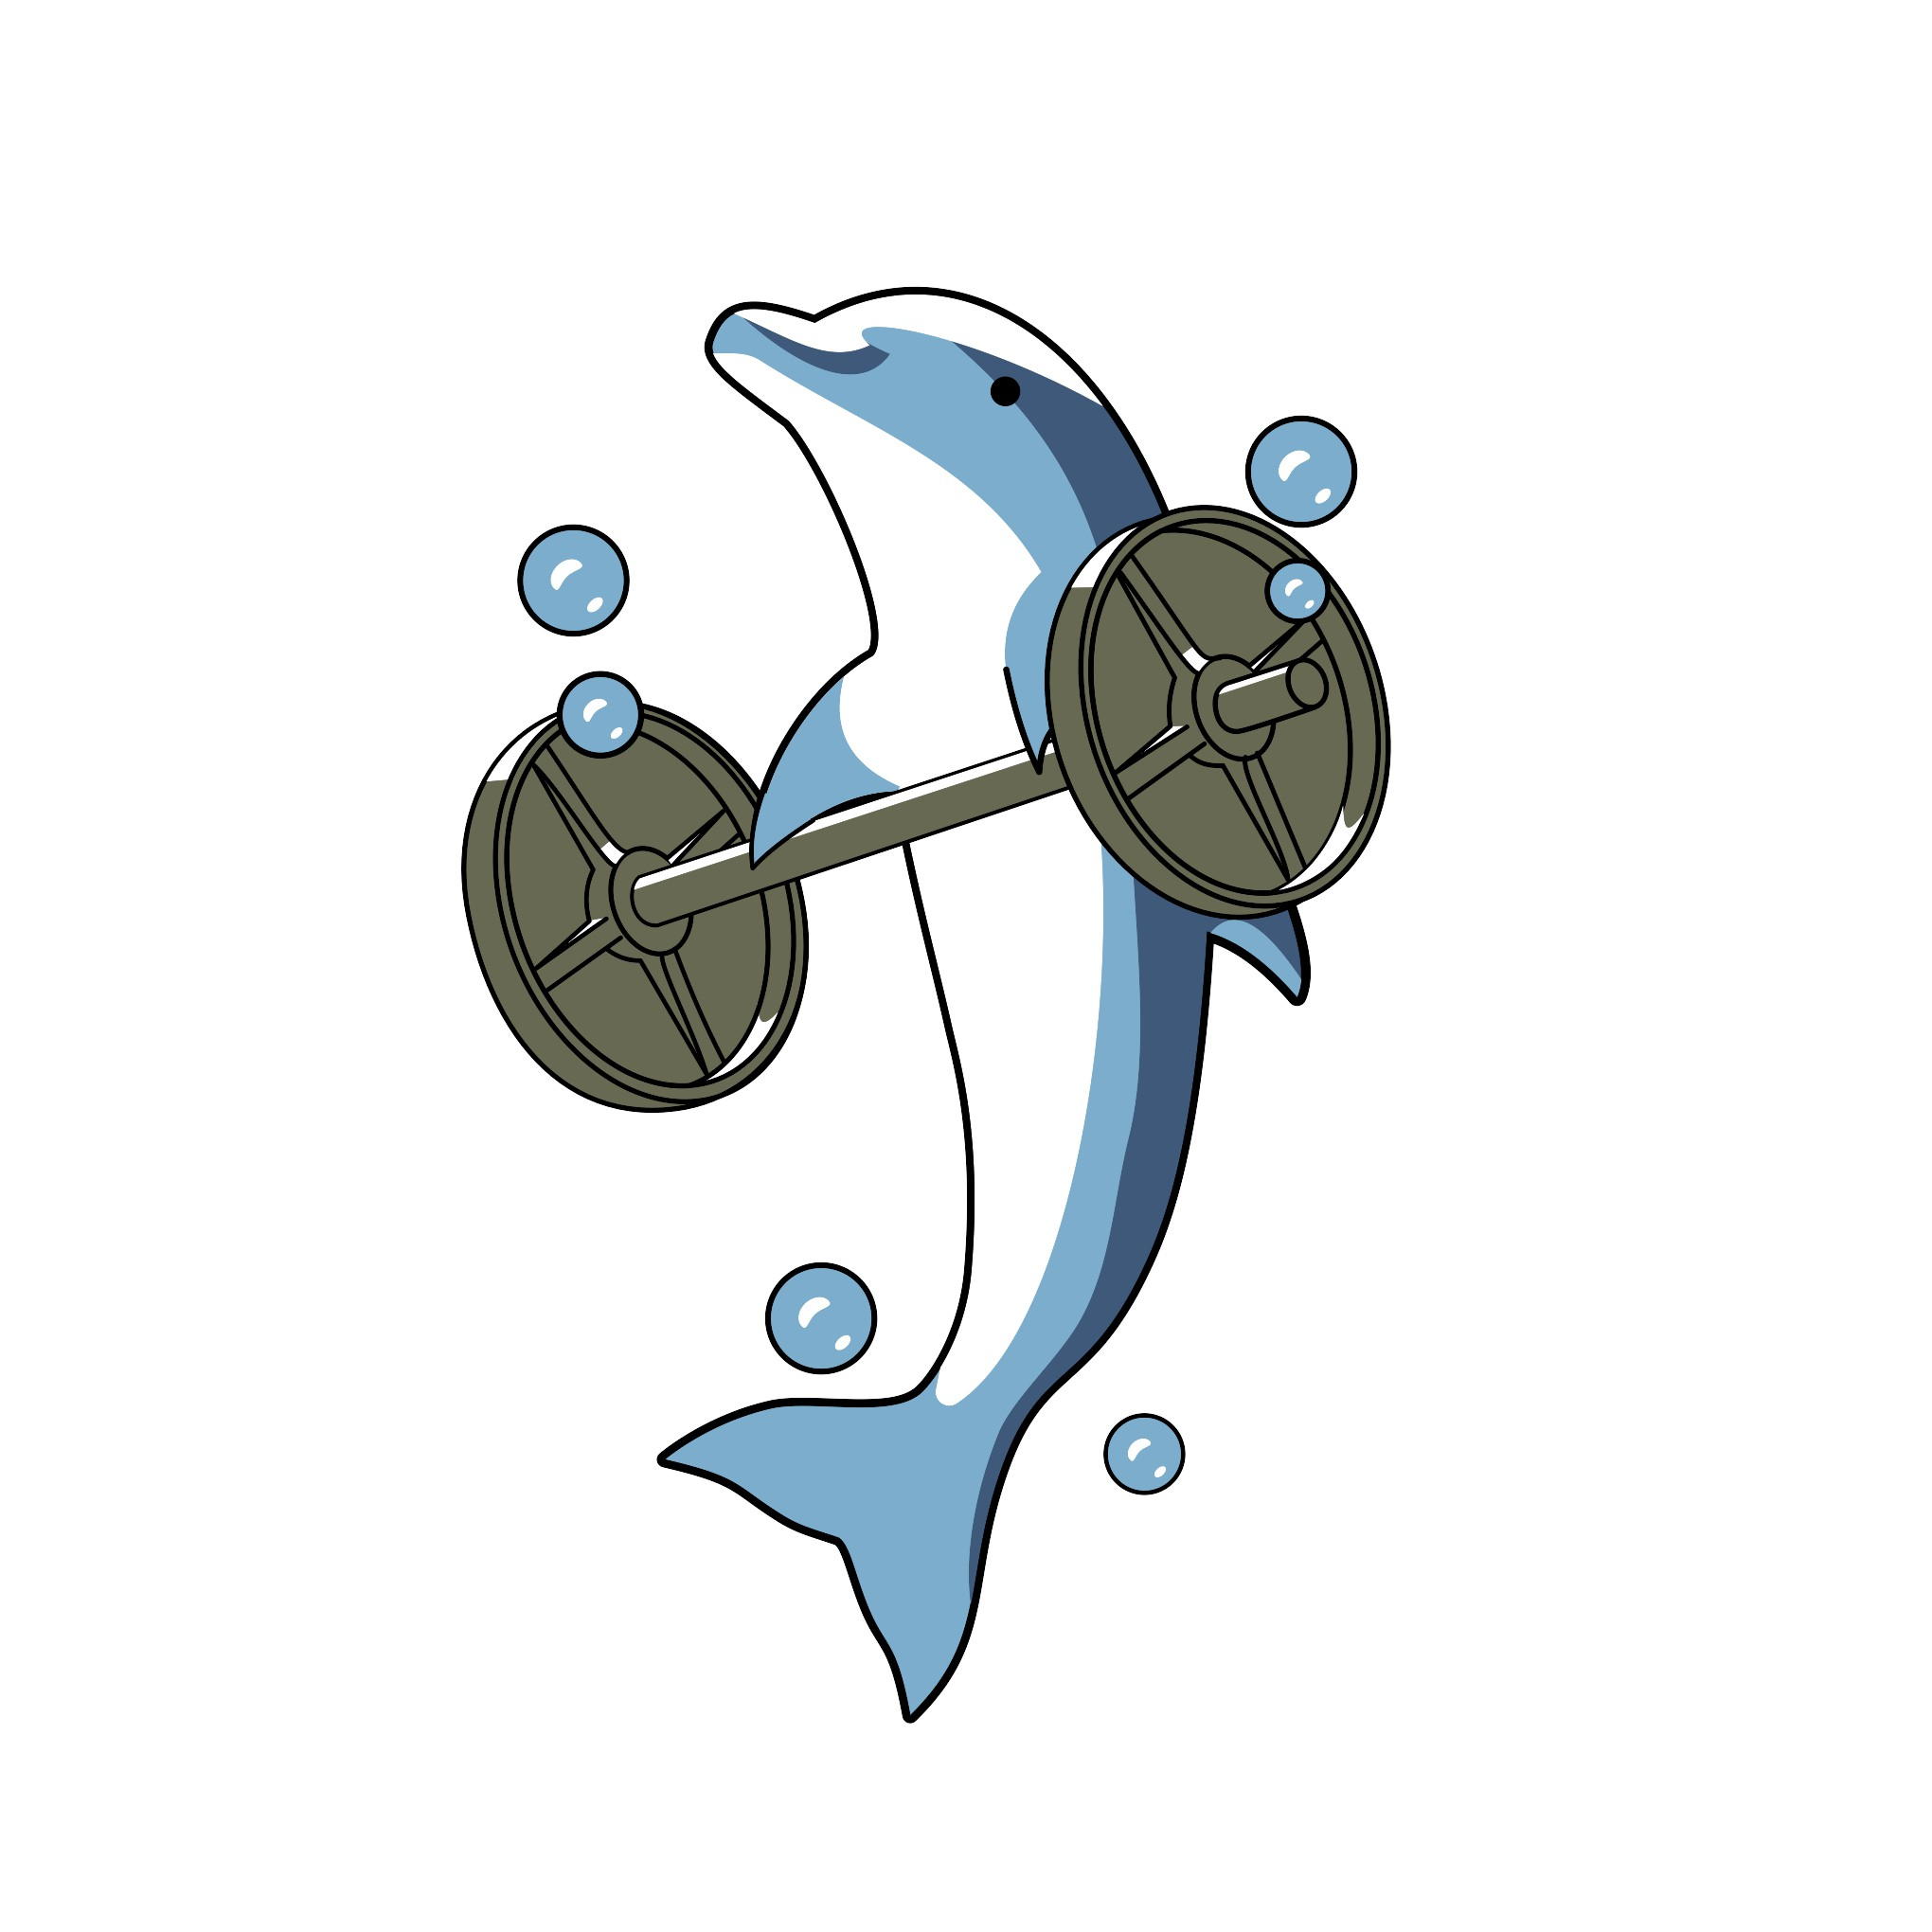 A Dolphin Dead Lifting. Design a T-Shirt for our fitness company.